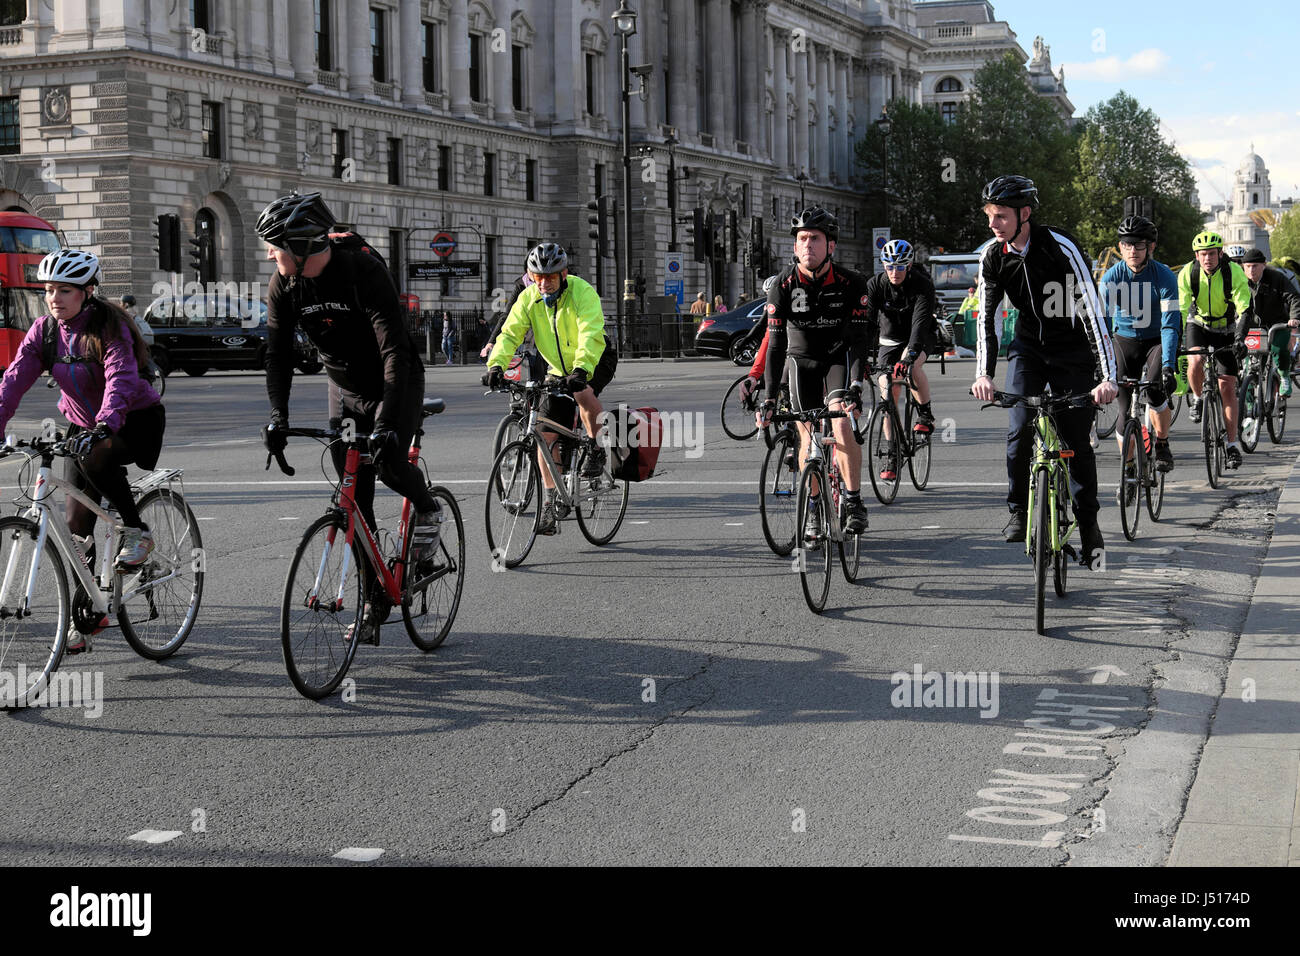 Commuters cyclists leaving work cycling near Parliament Square outside the Houses of Parliament in Westminster, - Stock Image